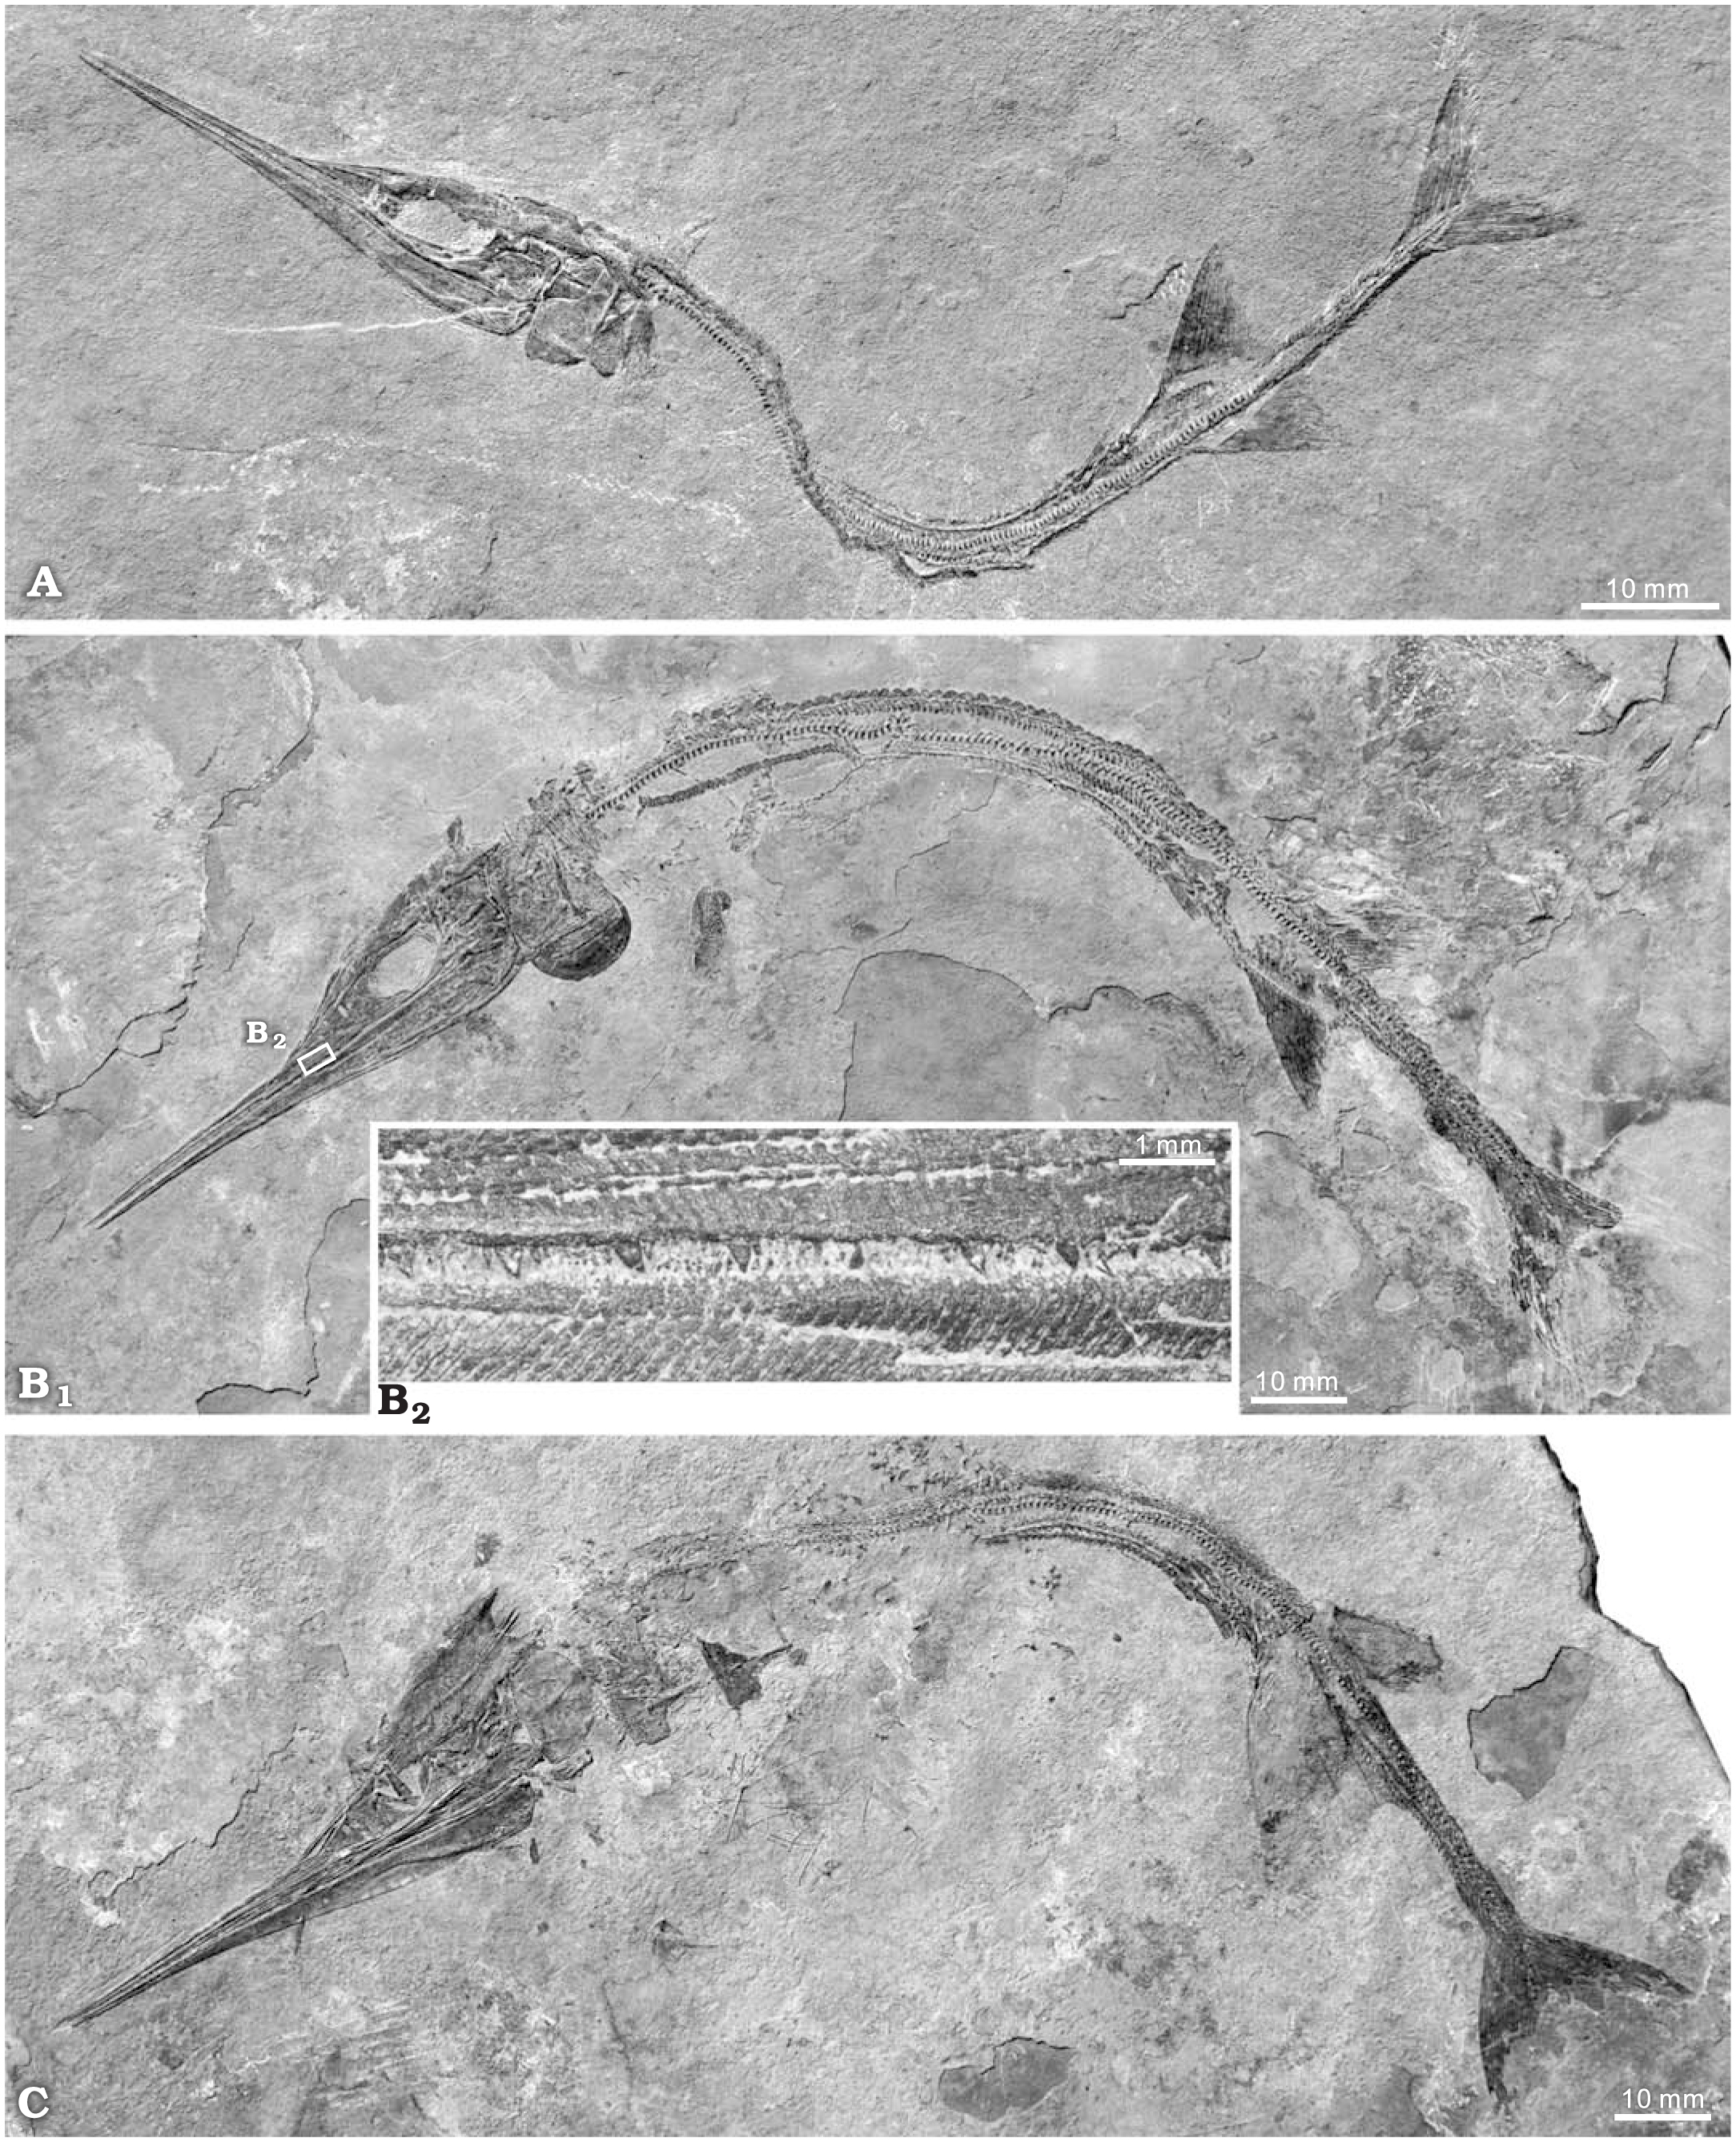 New Saurichthyid Actinopterygian Fishes from the Anisian